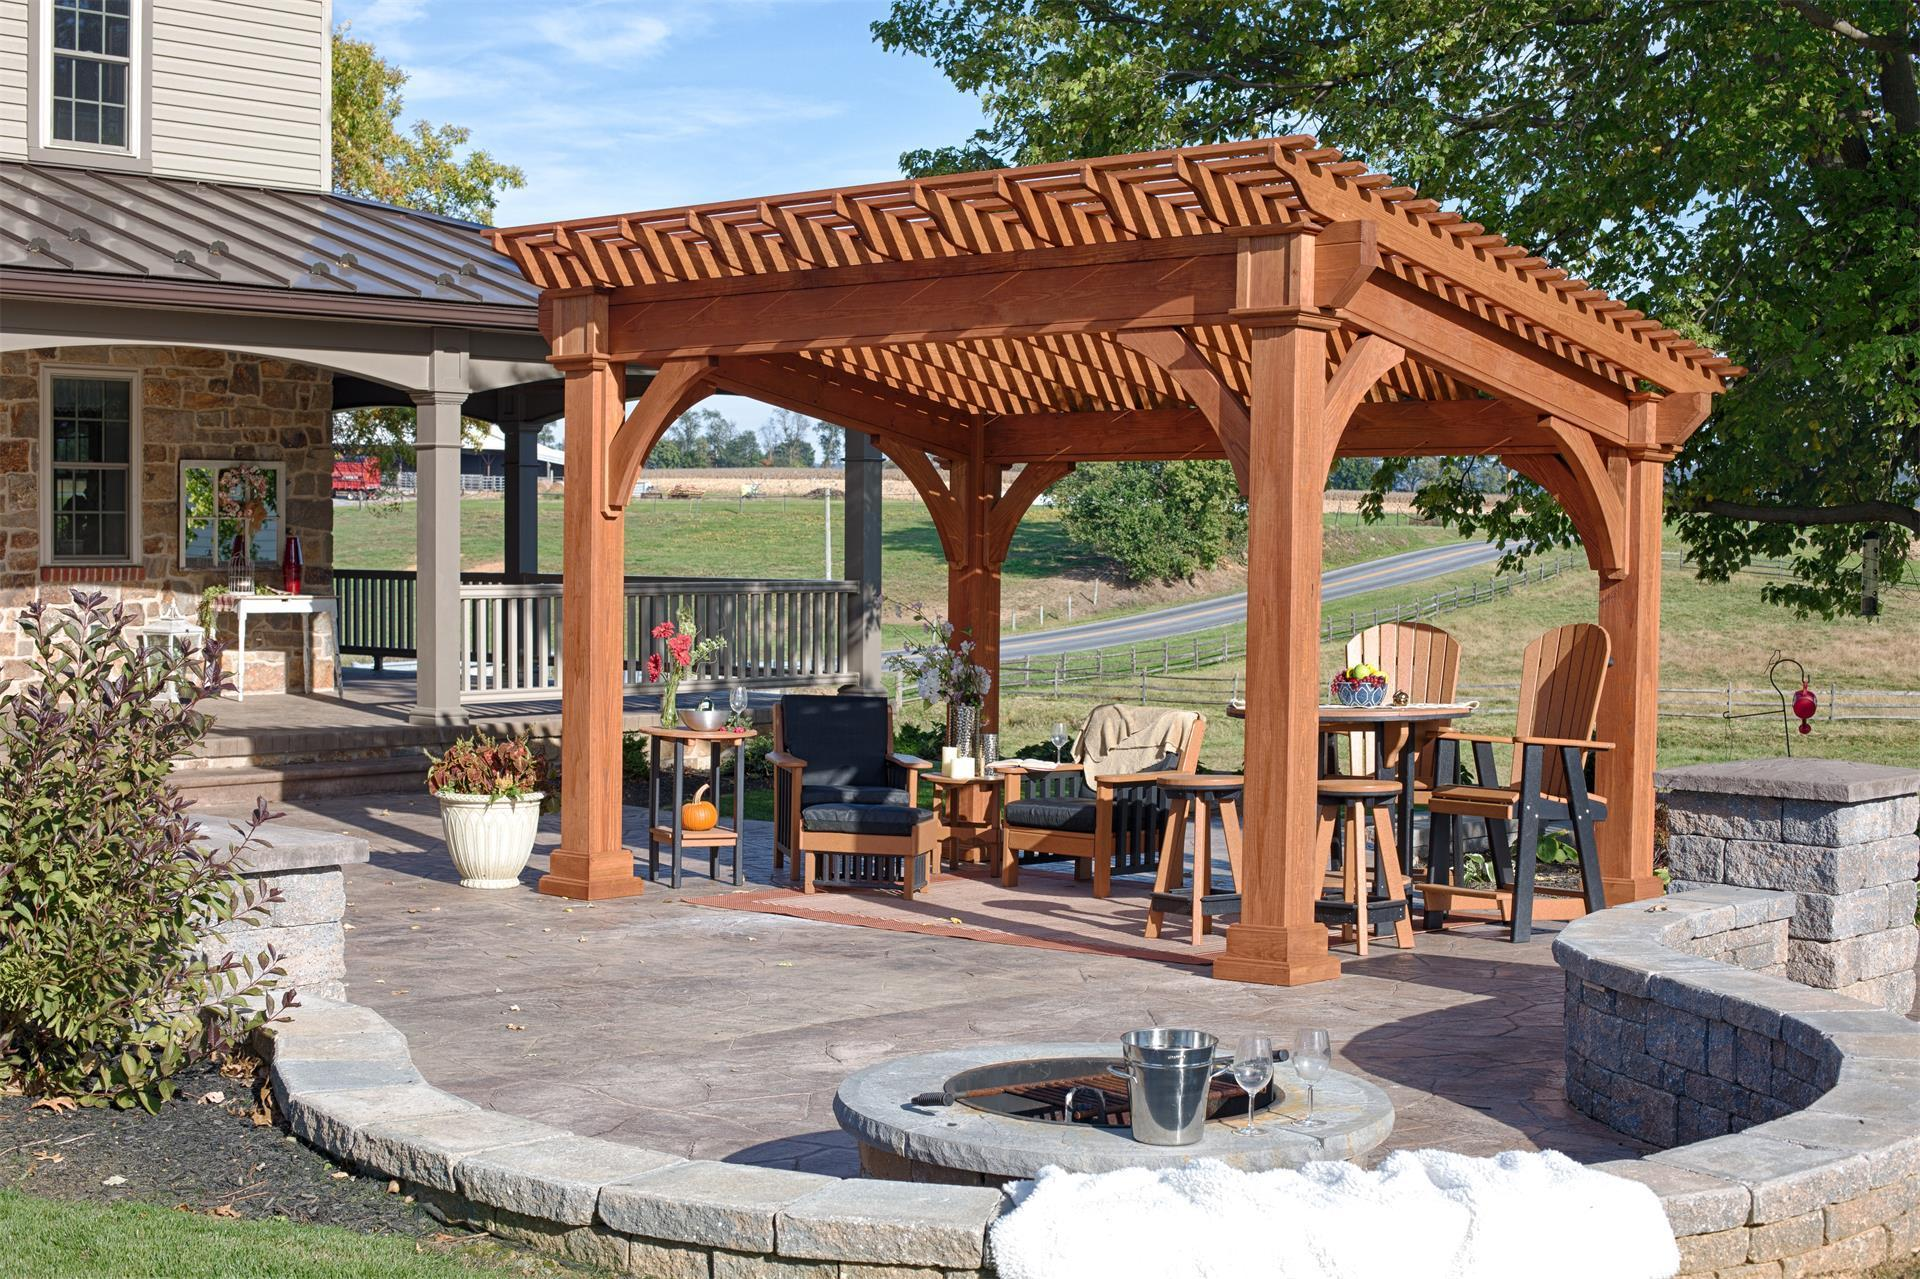 Santa Fe Pine Pergola from DutchCrafters Amish Furniture